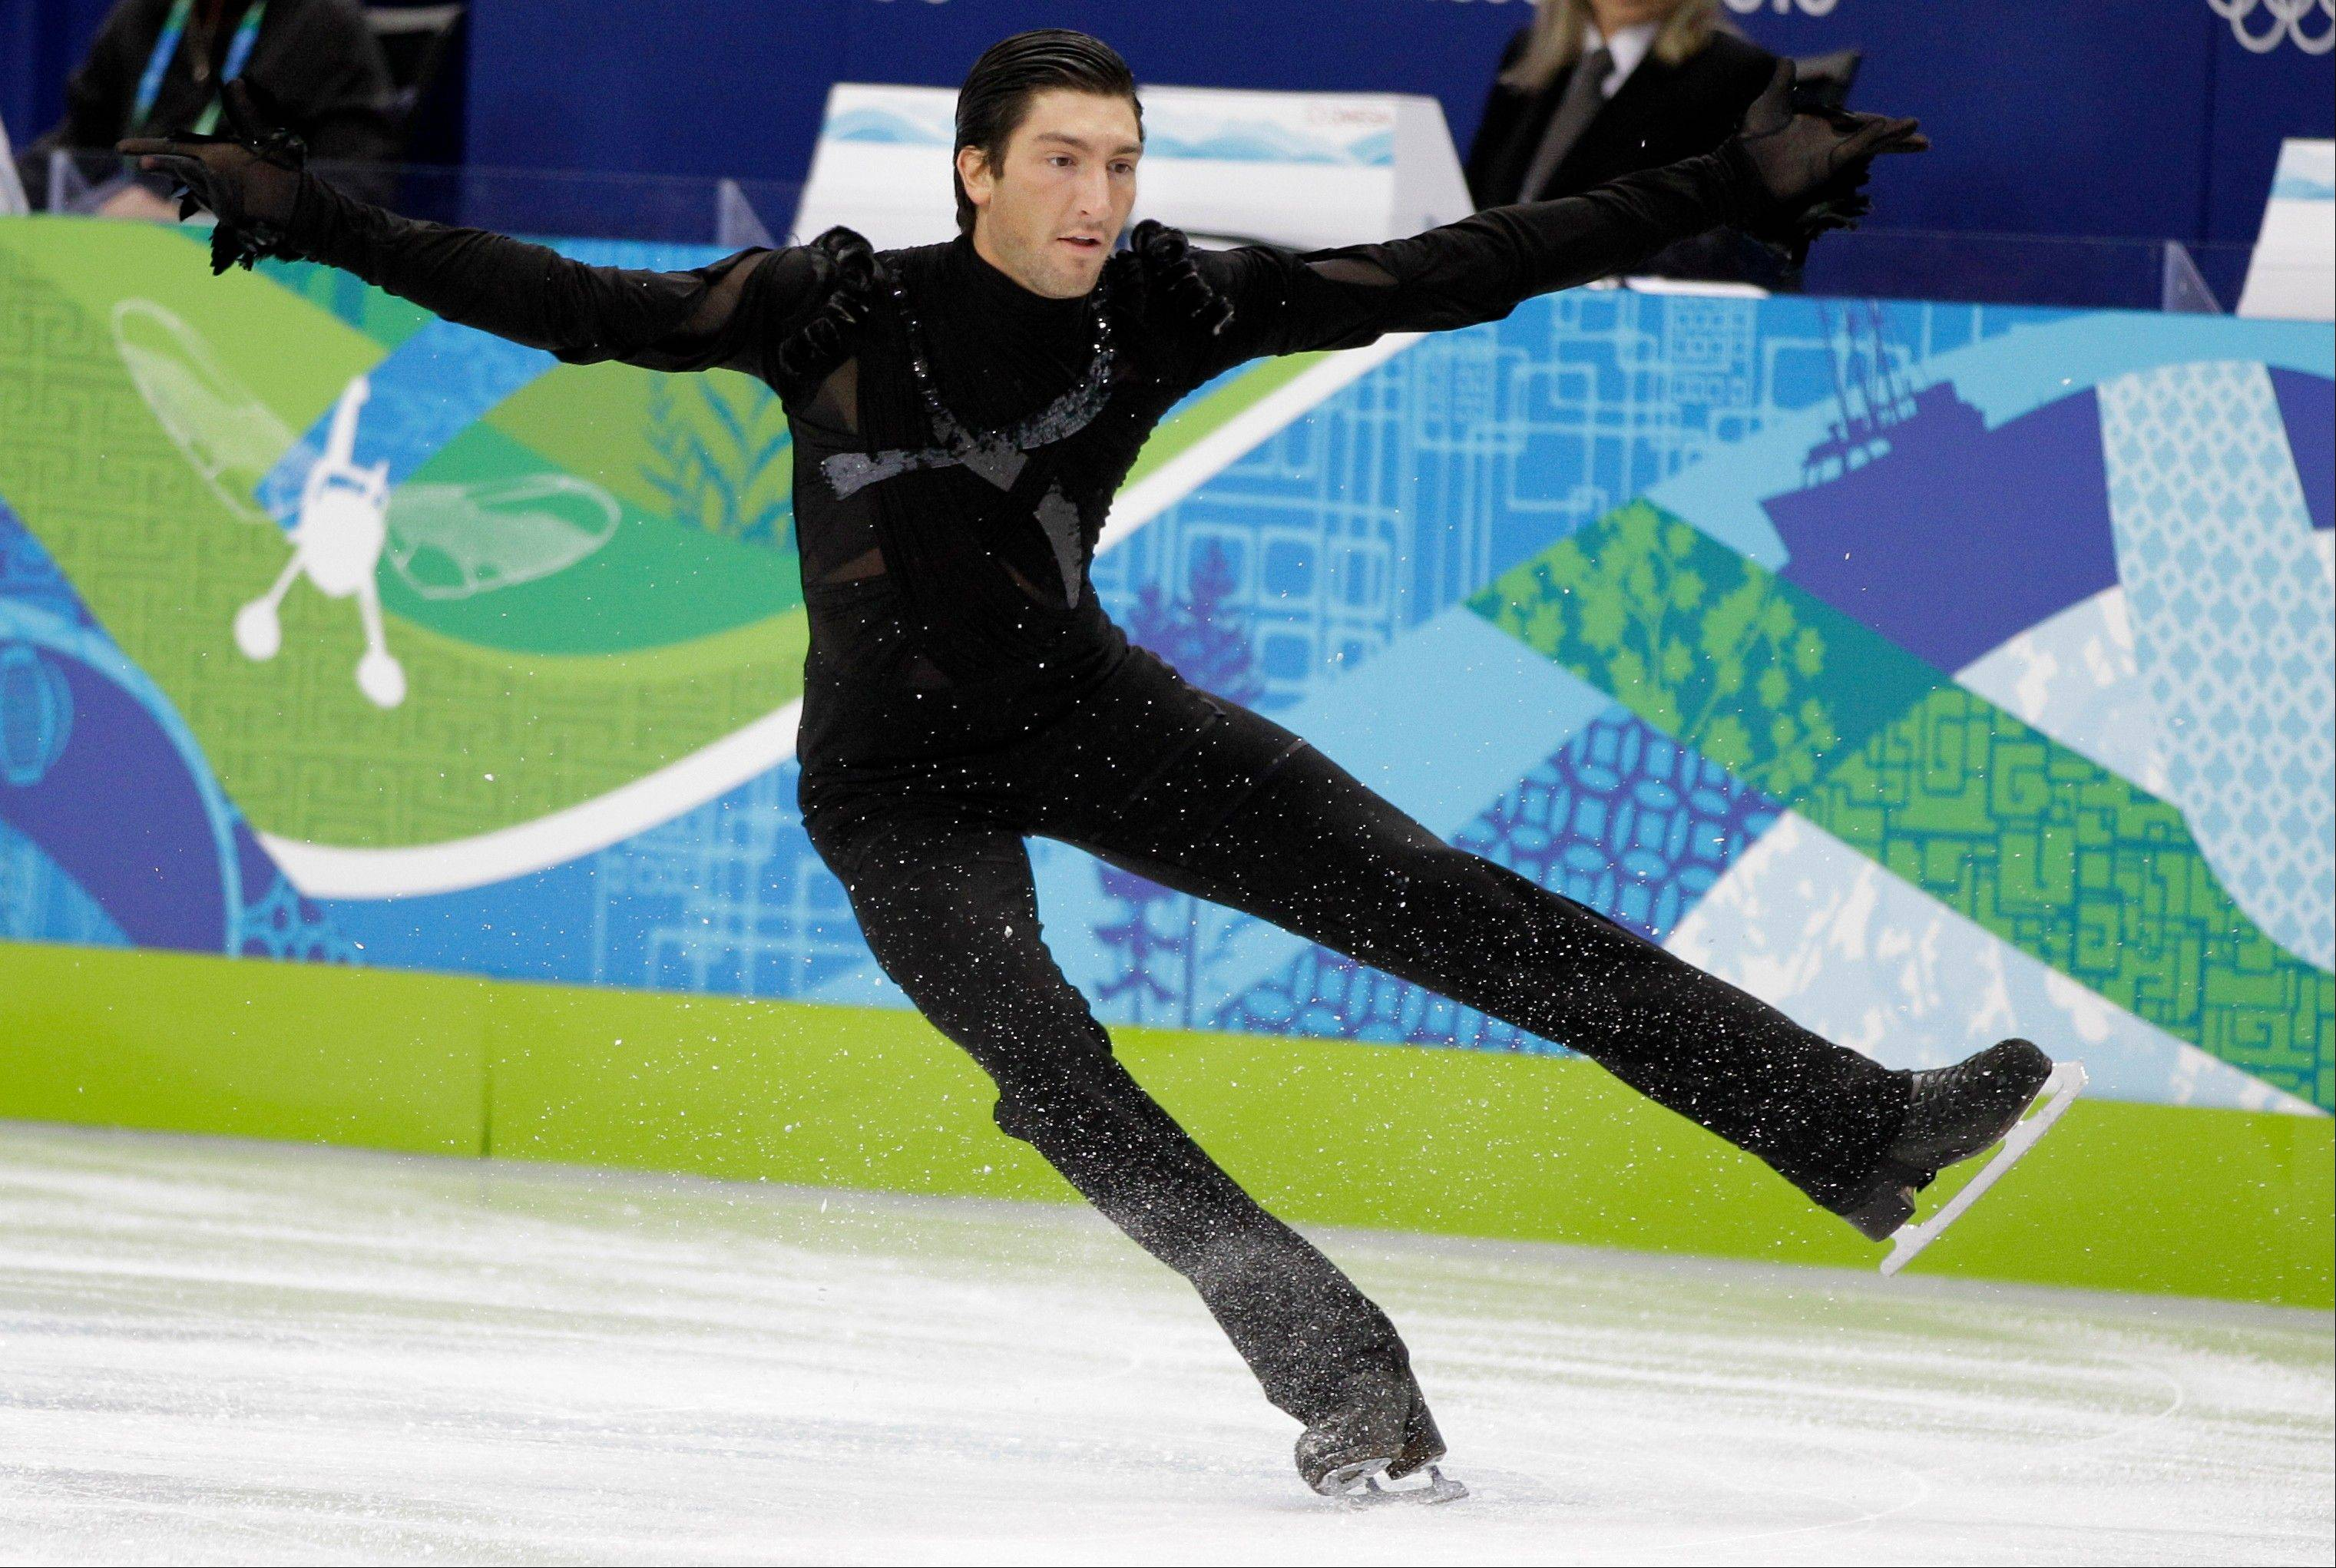 FILe- In this Feb. 16, 2010, file photo, USA's Evan Lysacek performs his short program during the men's figure skating competition at the Vancouver 2010 Olympics in Vancouver, British Columbia. It's been more than three years since Lysacek skated off with the gold medal in Vancouver. The next Olympics are 6 1-2 months away, and Lysacek is preparing to defend his title, something no male figure skater has done since 1952.